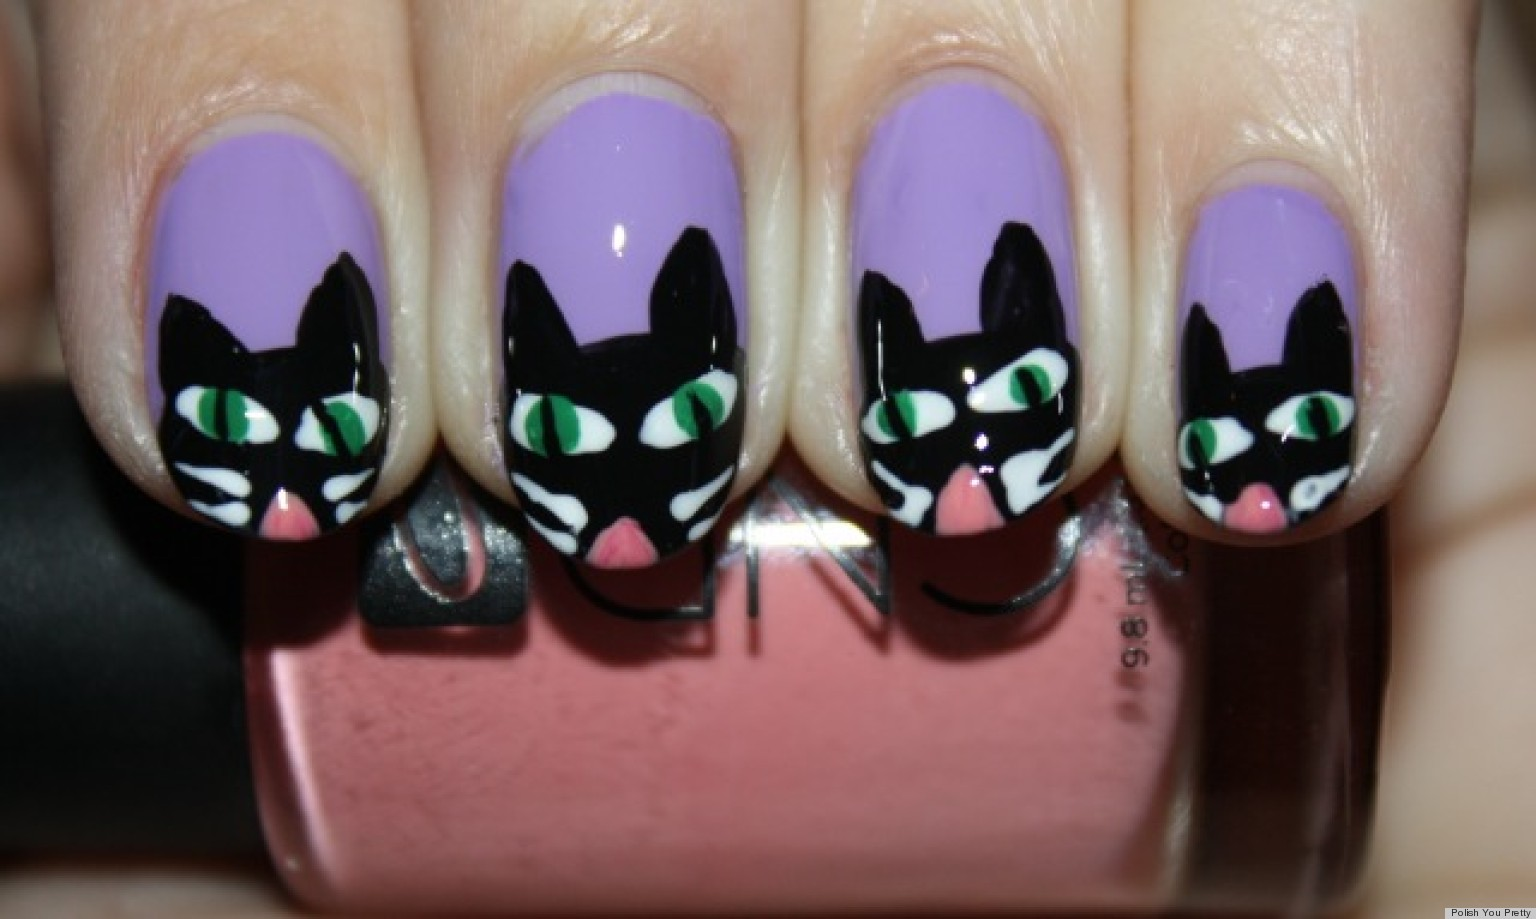 DIY Nail Art: Halloween-Inspired Scaredy Cat Manicure ...